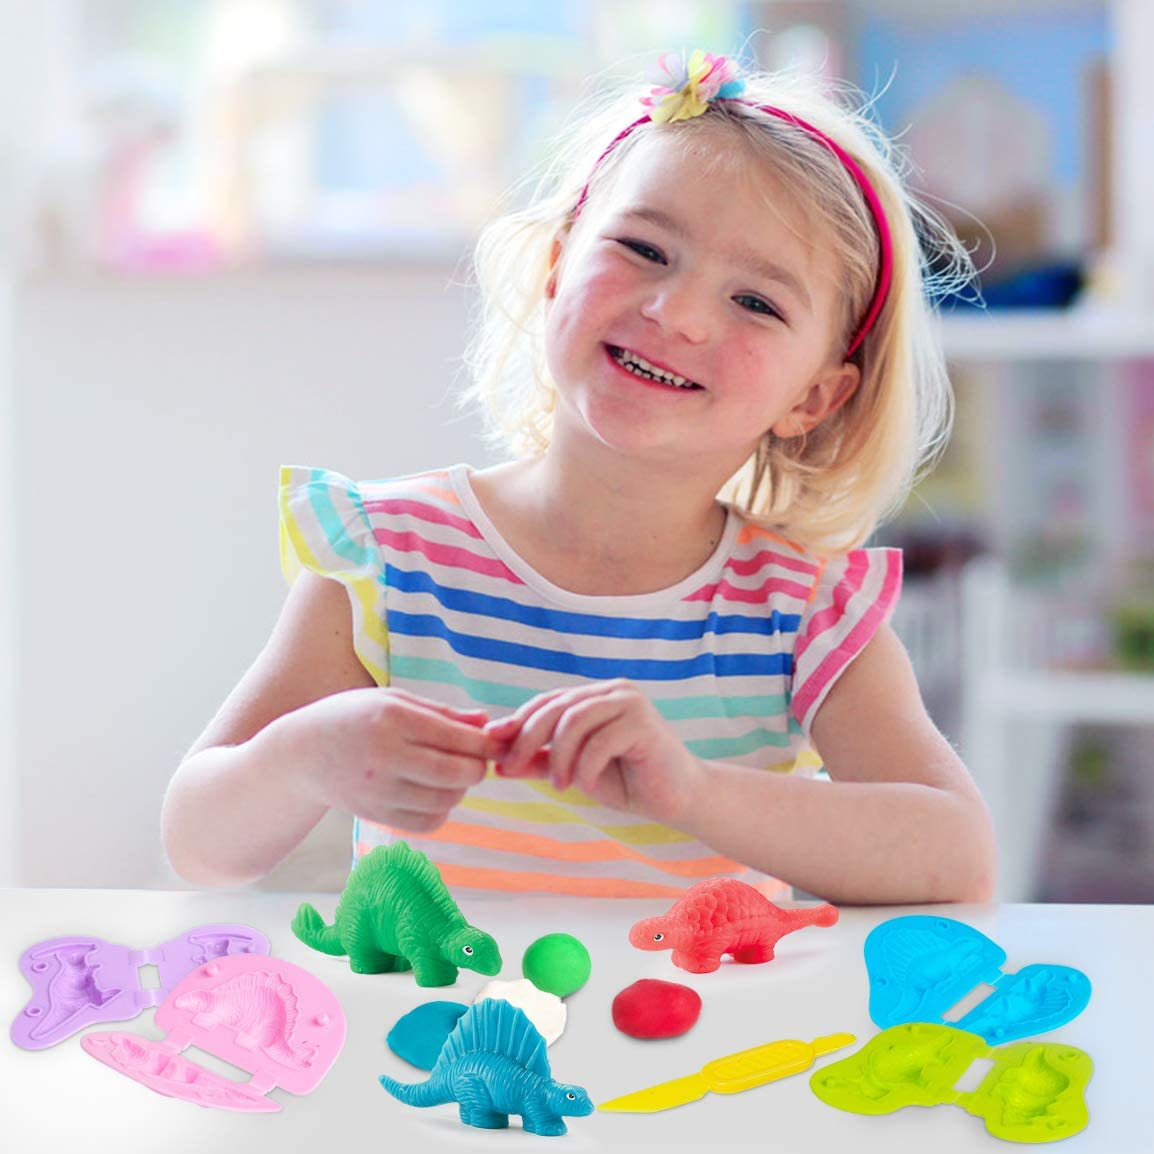 36 Colors Model Magic Clay Molding Clay Non Toxic Sculpting Clay DIY Clay Modeling Kit Wrystte Air Dry Clay Modeling Clay for Kids 39 Packs